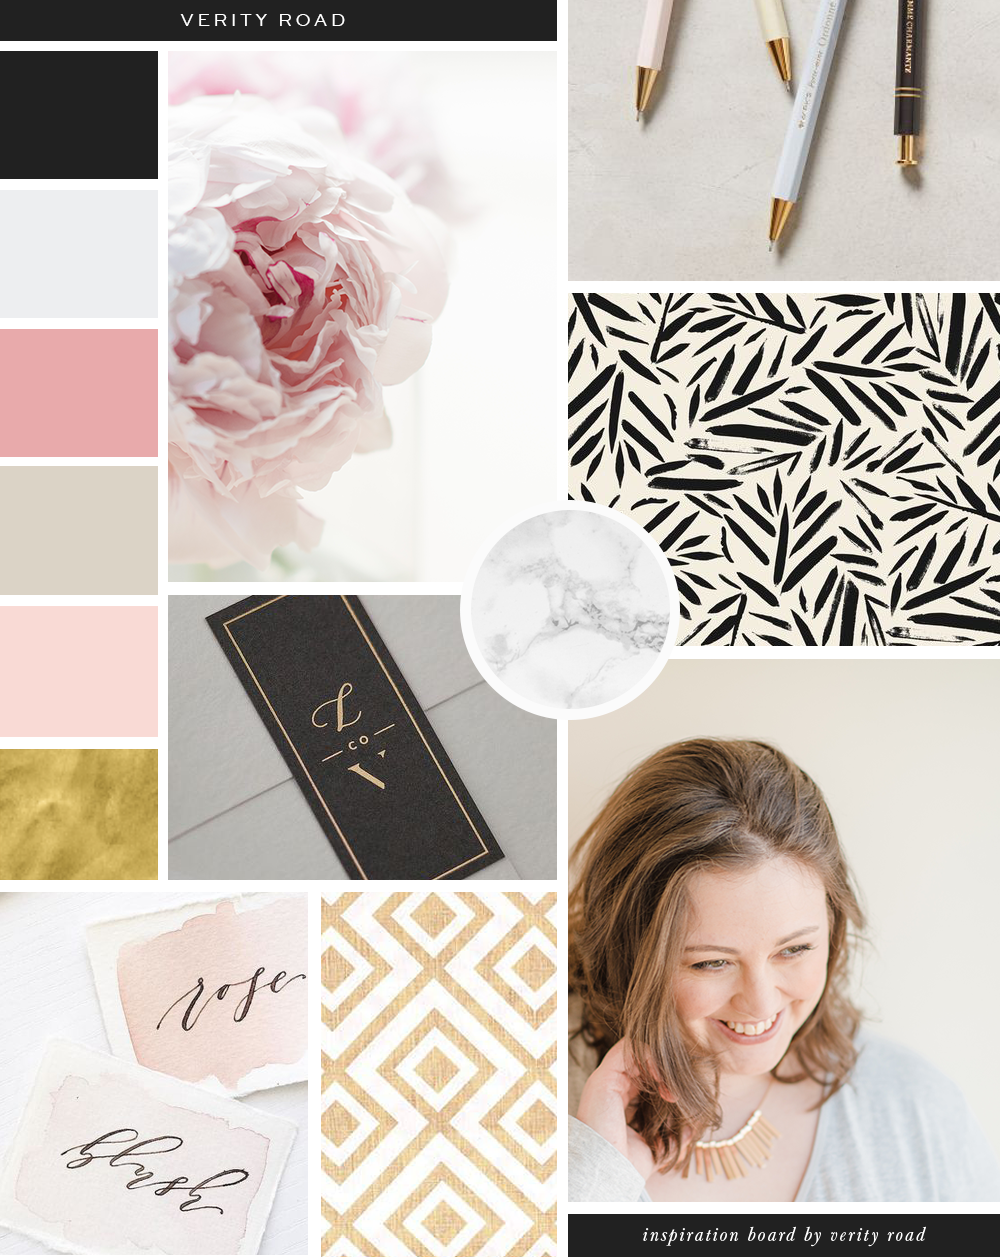 Mood board for Verity Road, luxury branding and web design for female entrepreneurs. Feminine branding, feminine business, business branding. Inspiration board of typography, script font, sans serif, black, gold, blush, latte, floral inspiration, marble pattern, geometric shapes, business owner, office, workspace, watercolor. See more for brand board, social media branding and web design.